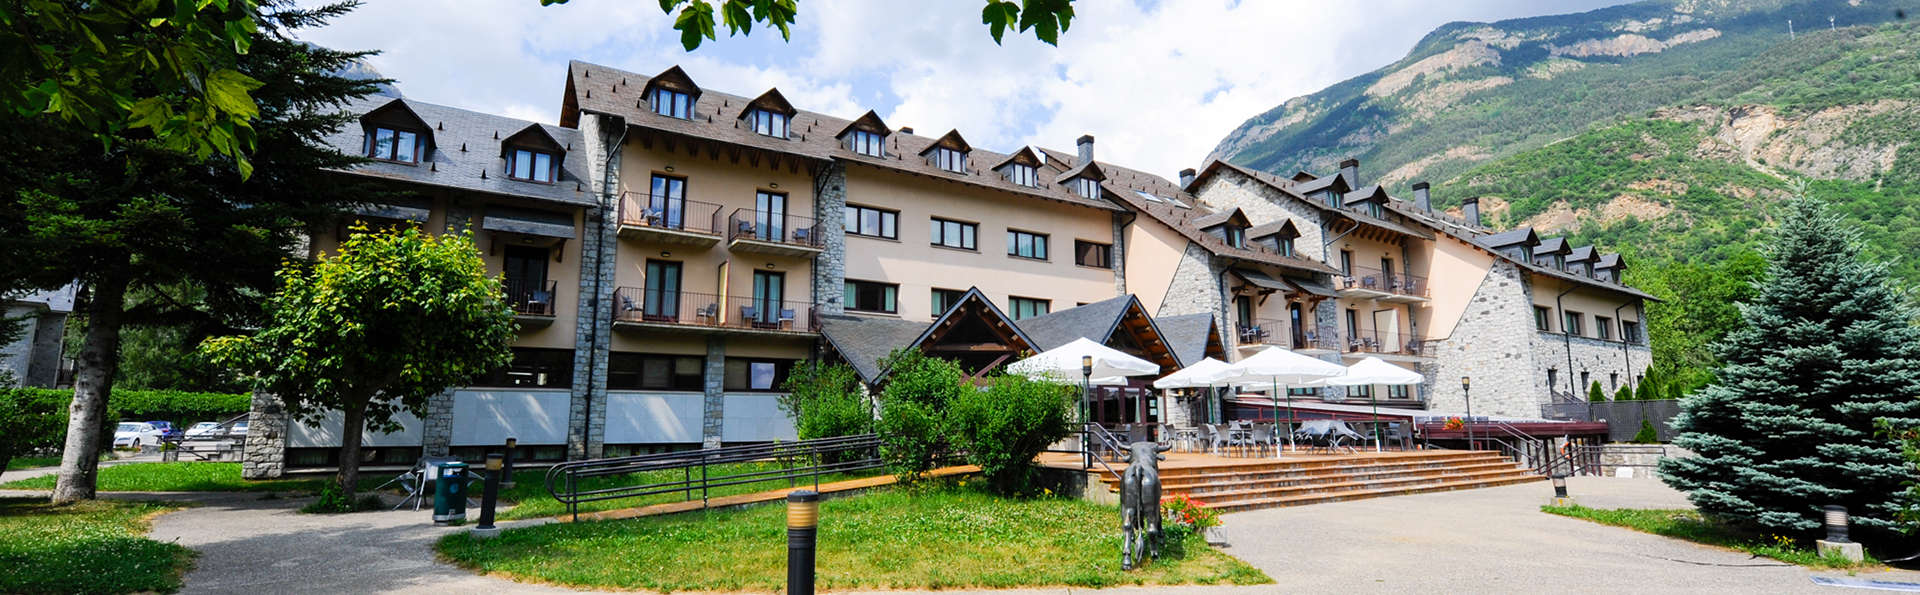 SOMMOS Hotel Benasque Spa - EDIT_NEW3_ext8.jpg